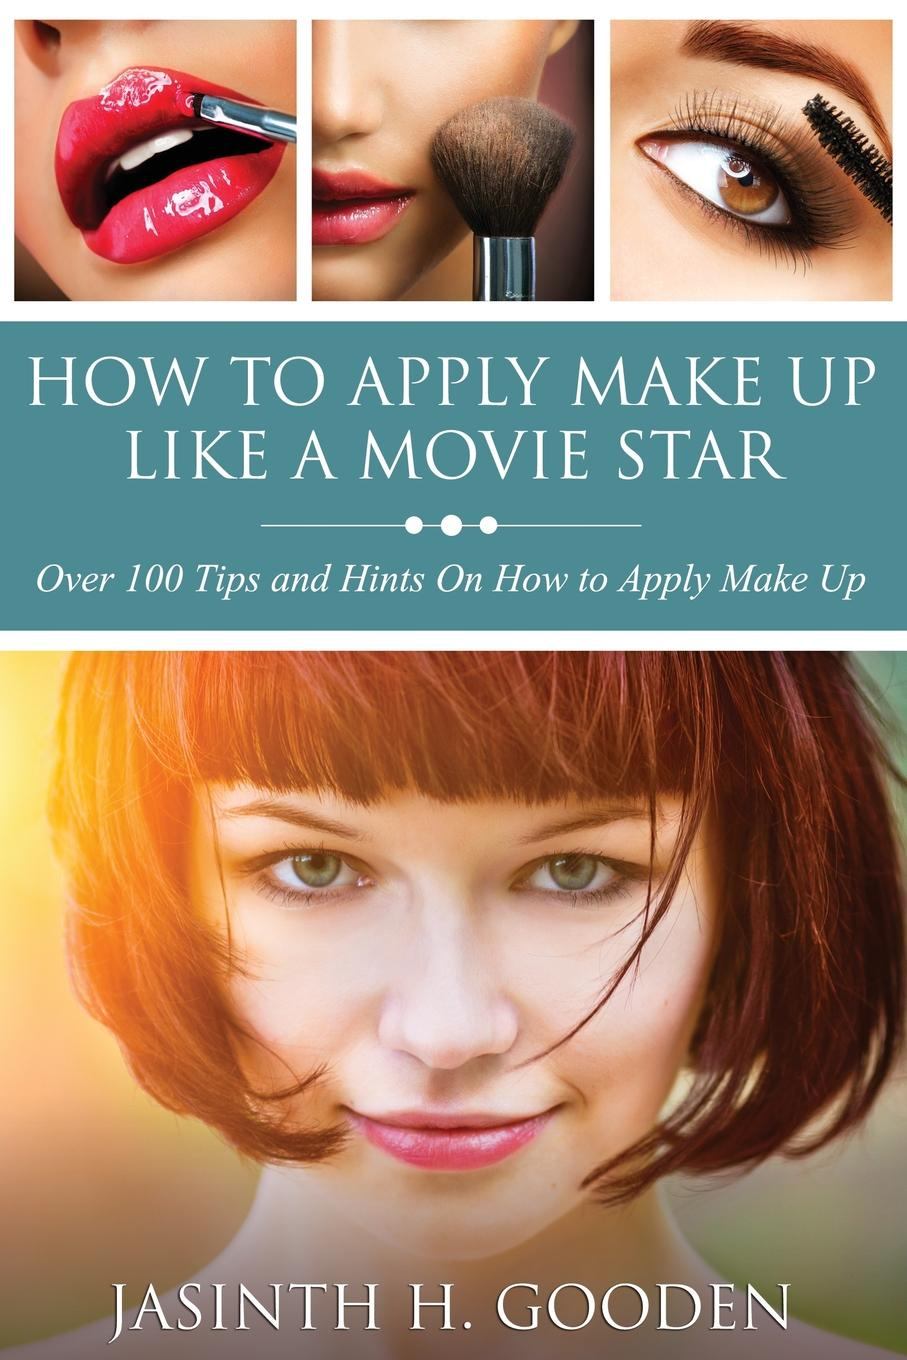 Jasinth H. Gooden How to Apply Make Up Like in the Movies